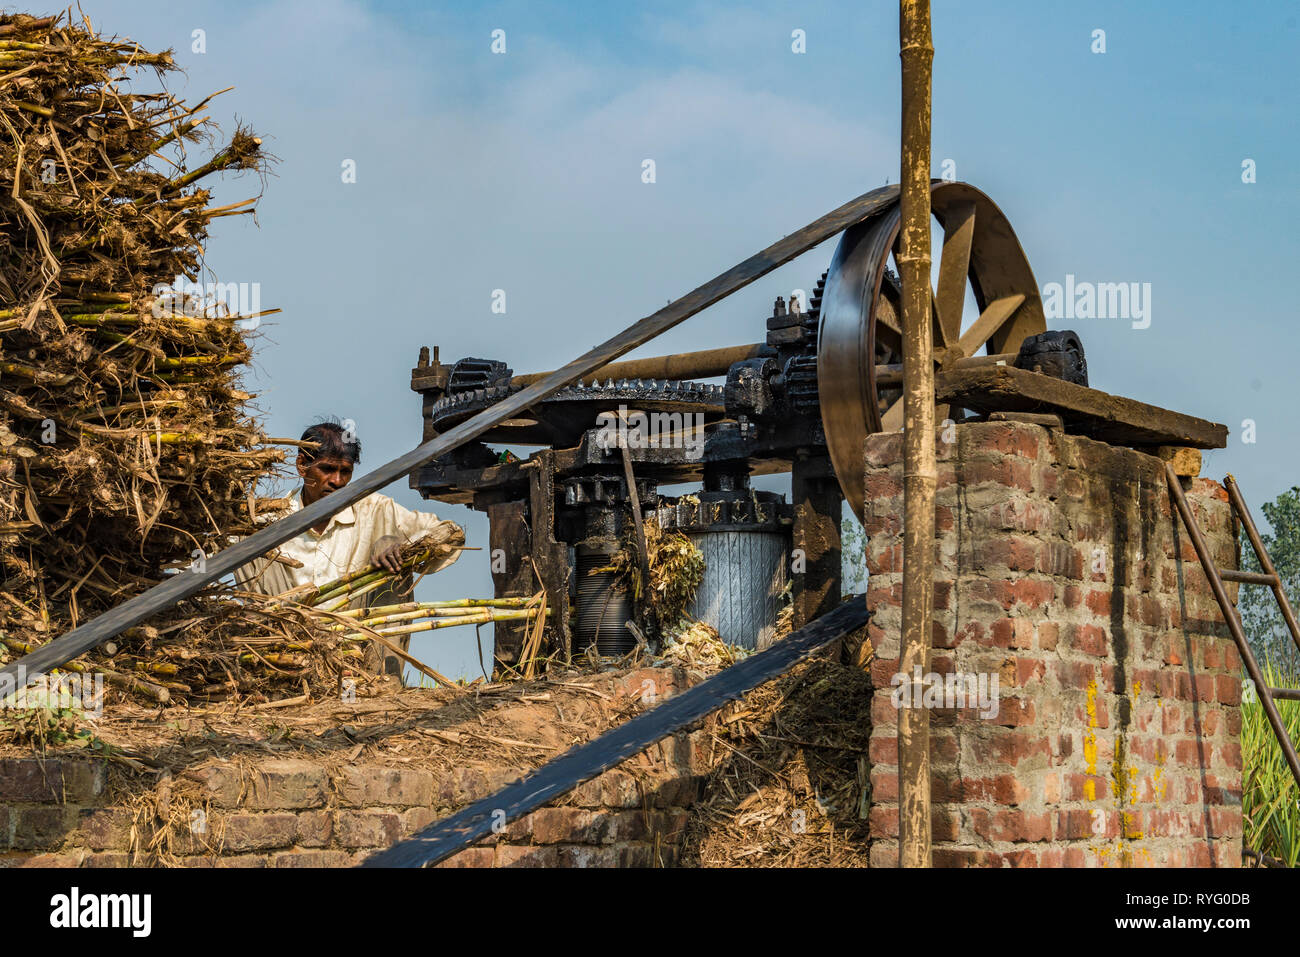 HIMACHAL PRADESH, INDIA,Worker operating a squeezing machine for sugar cane in rural India - Stock Image